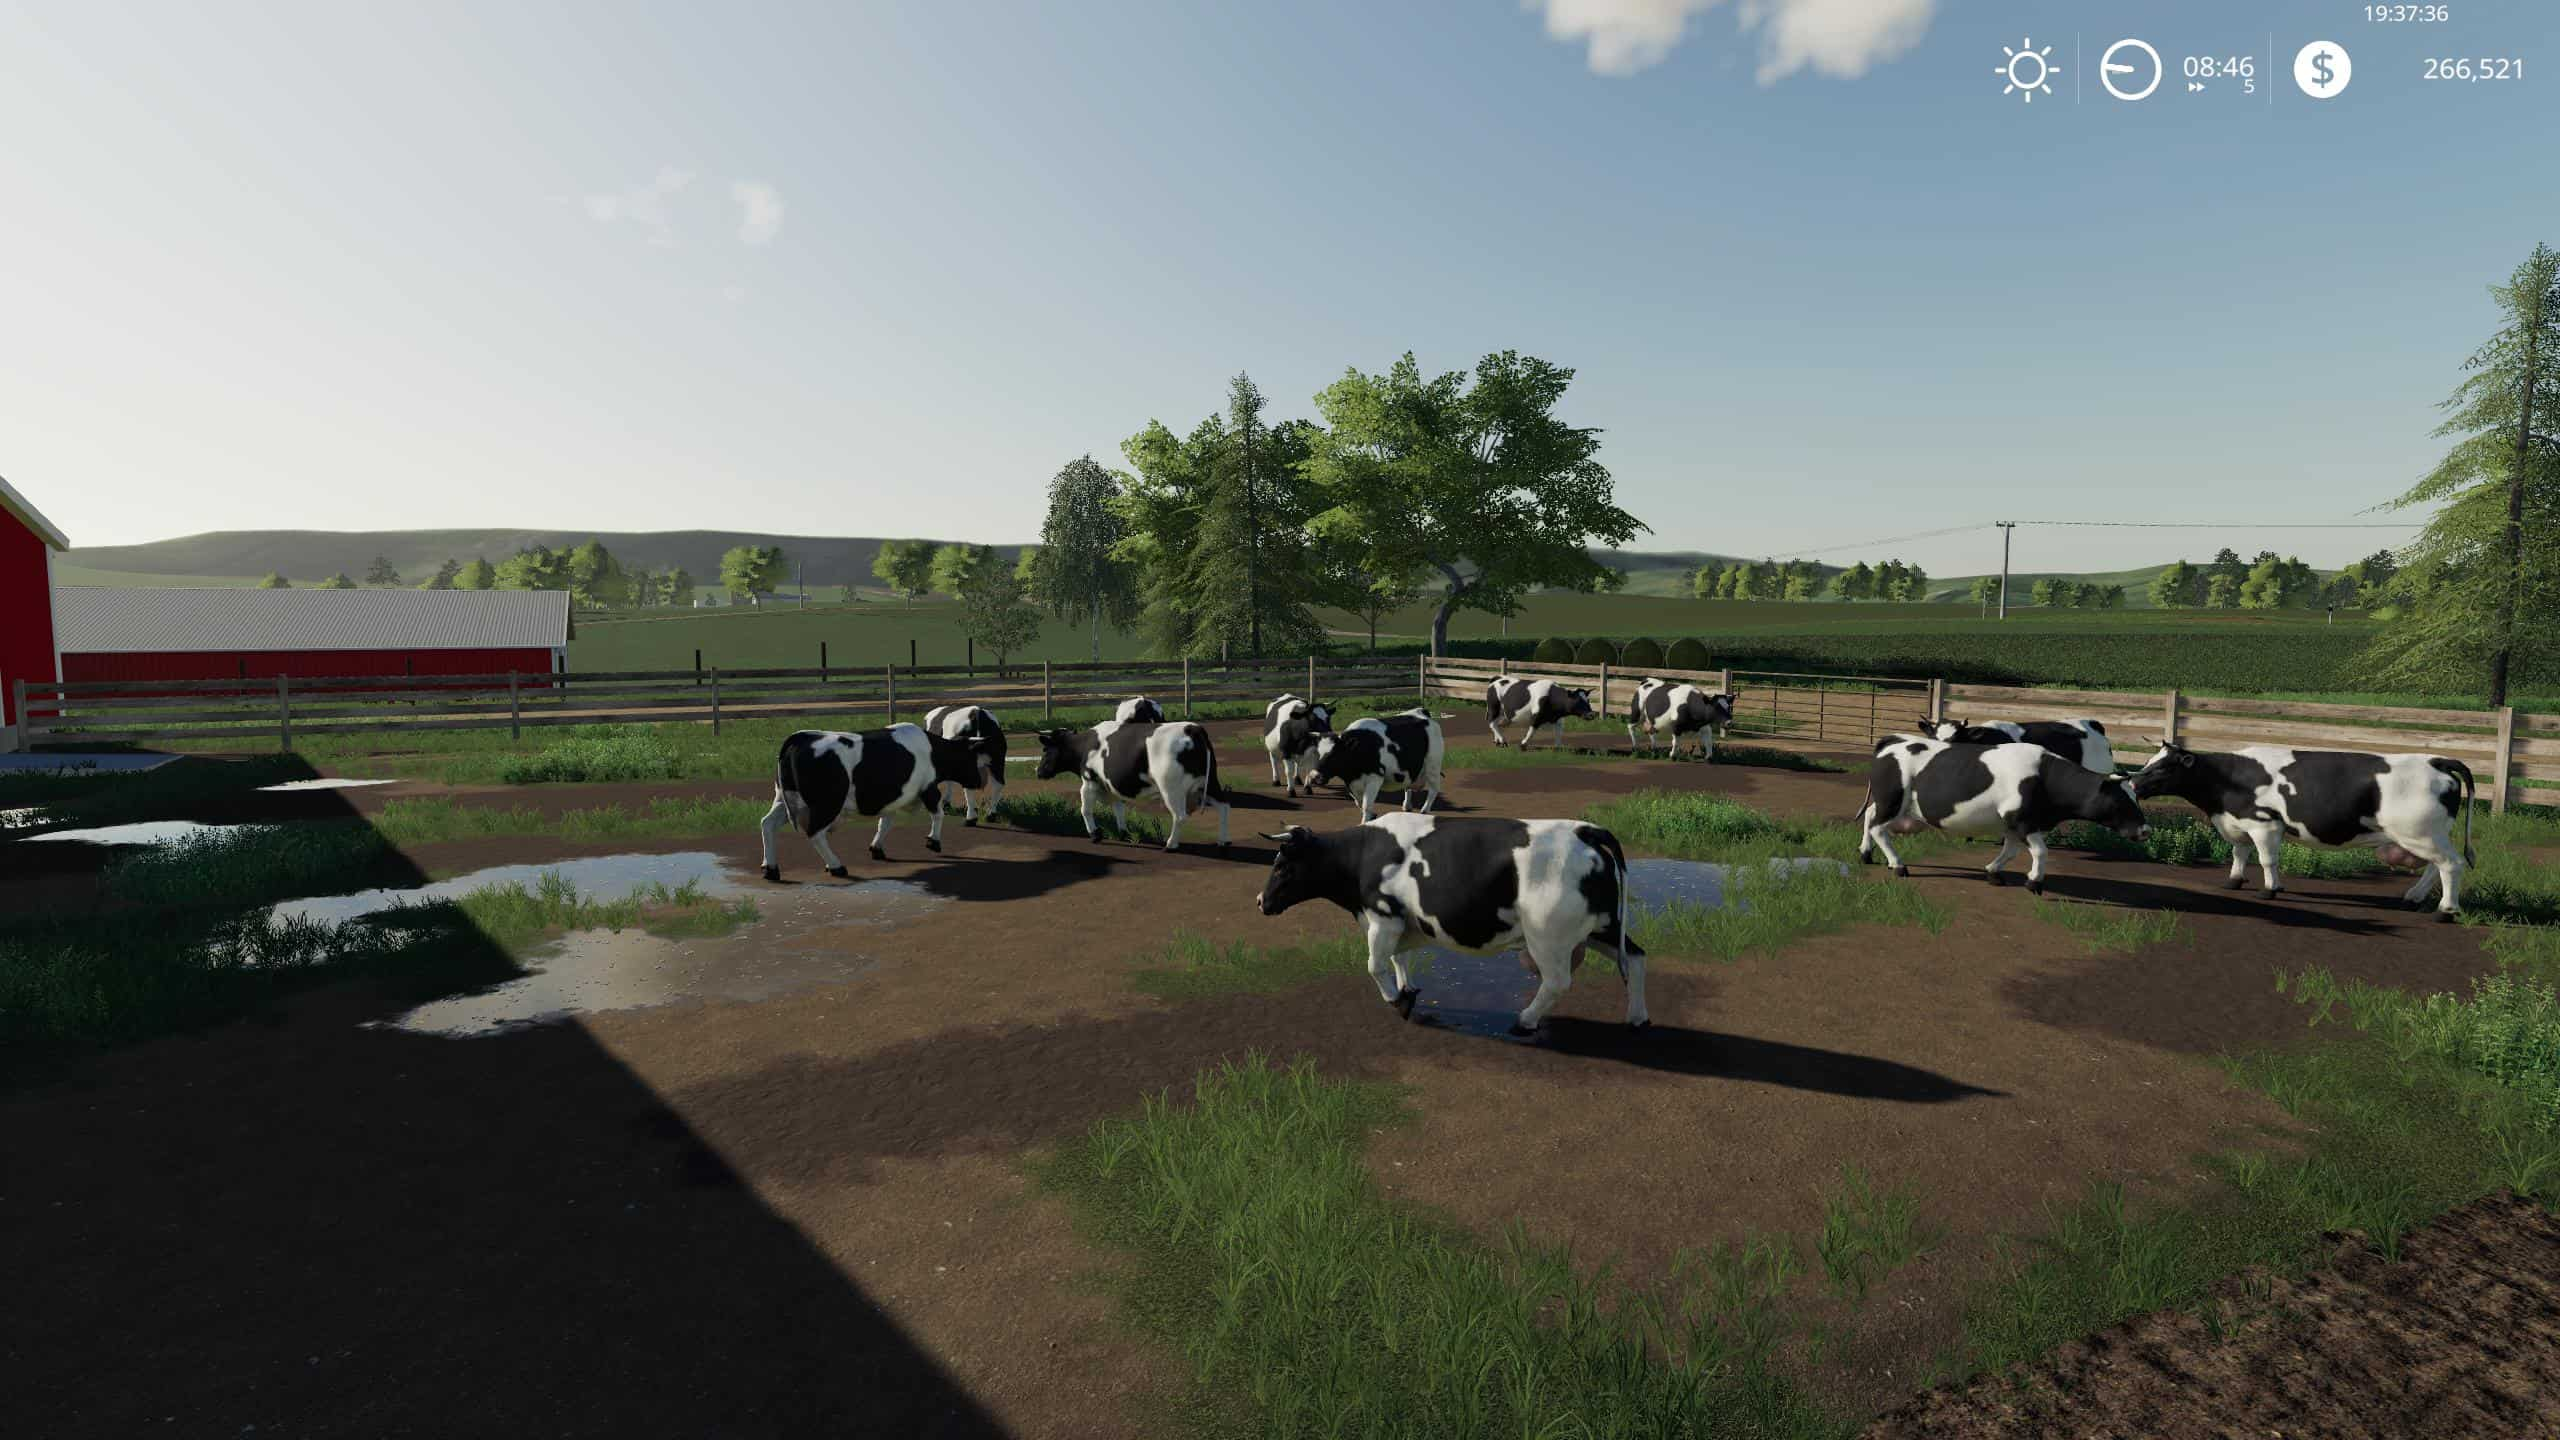 FS19 Autumn Oaks Cows! v2 0 - Farming simulator 2019 / 2017